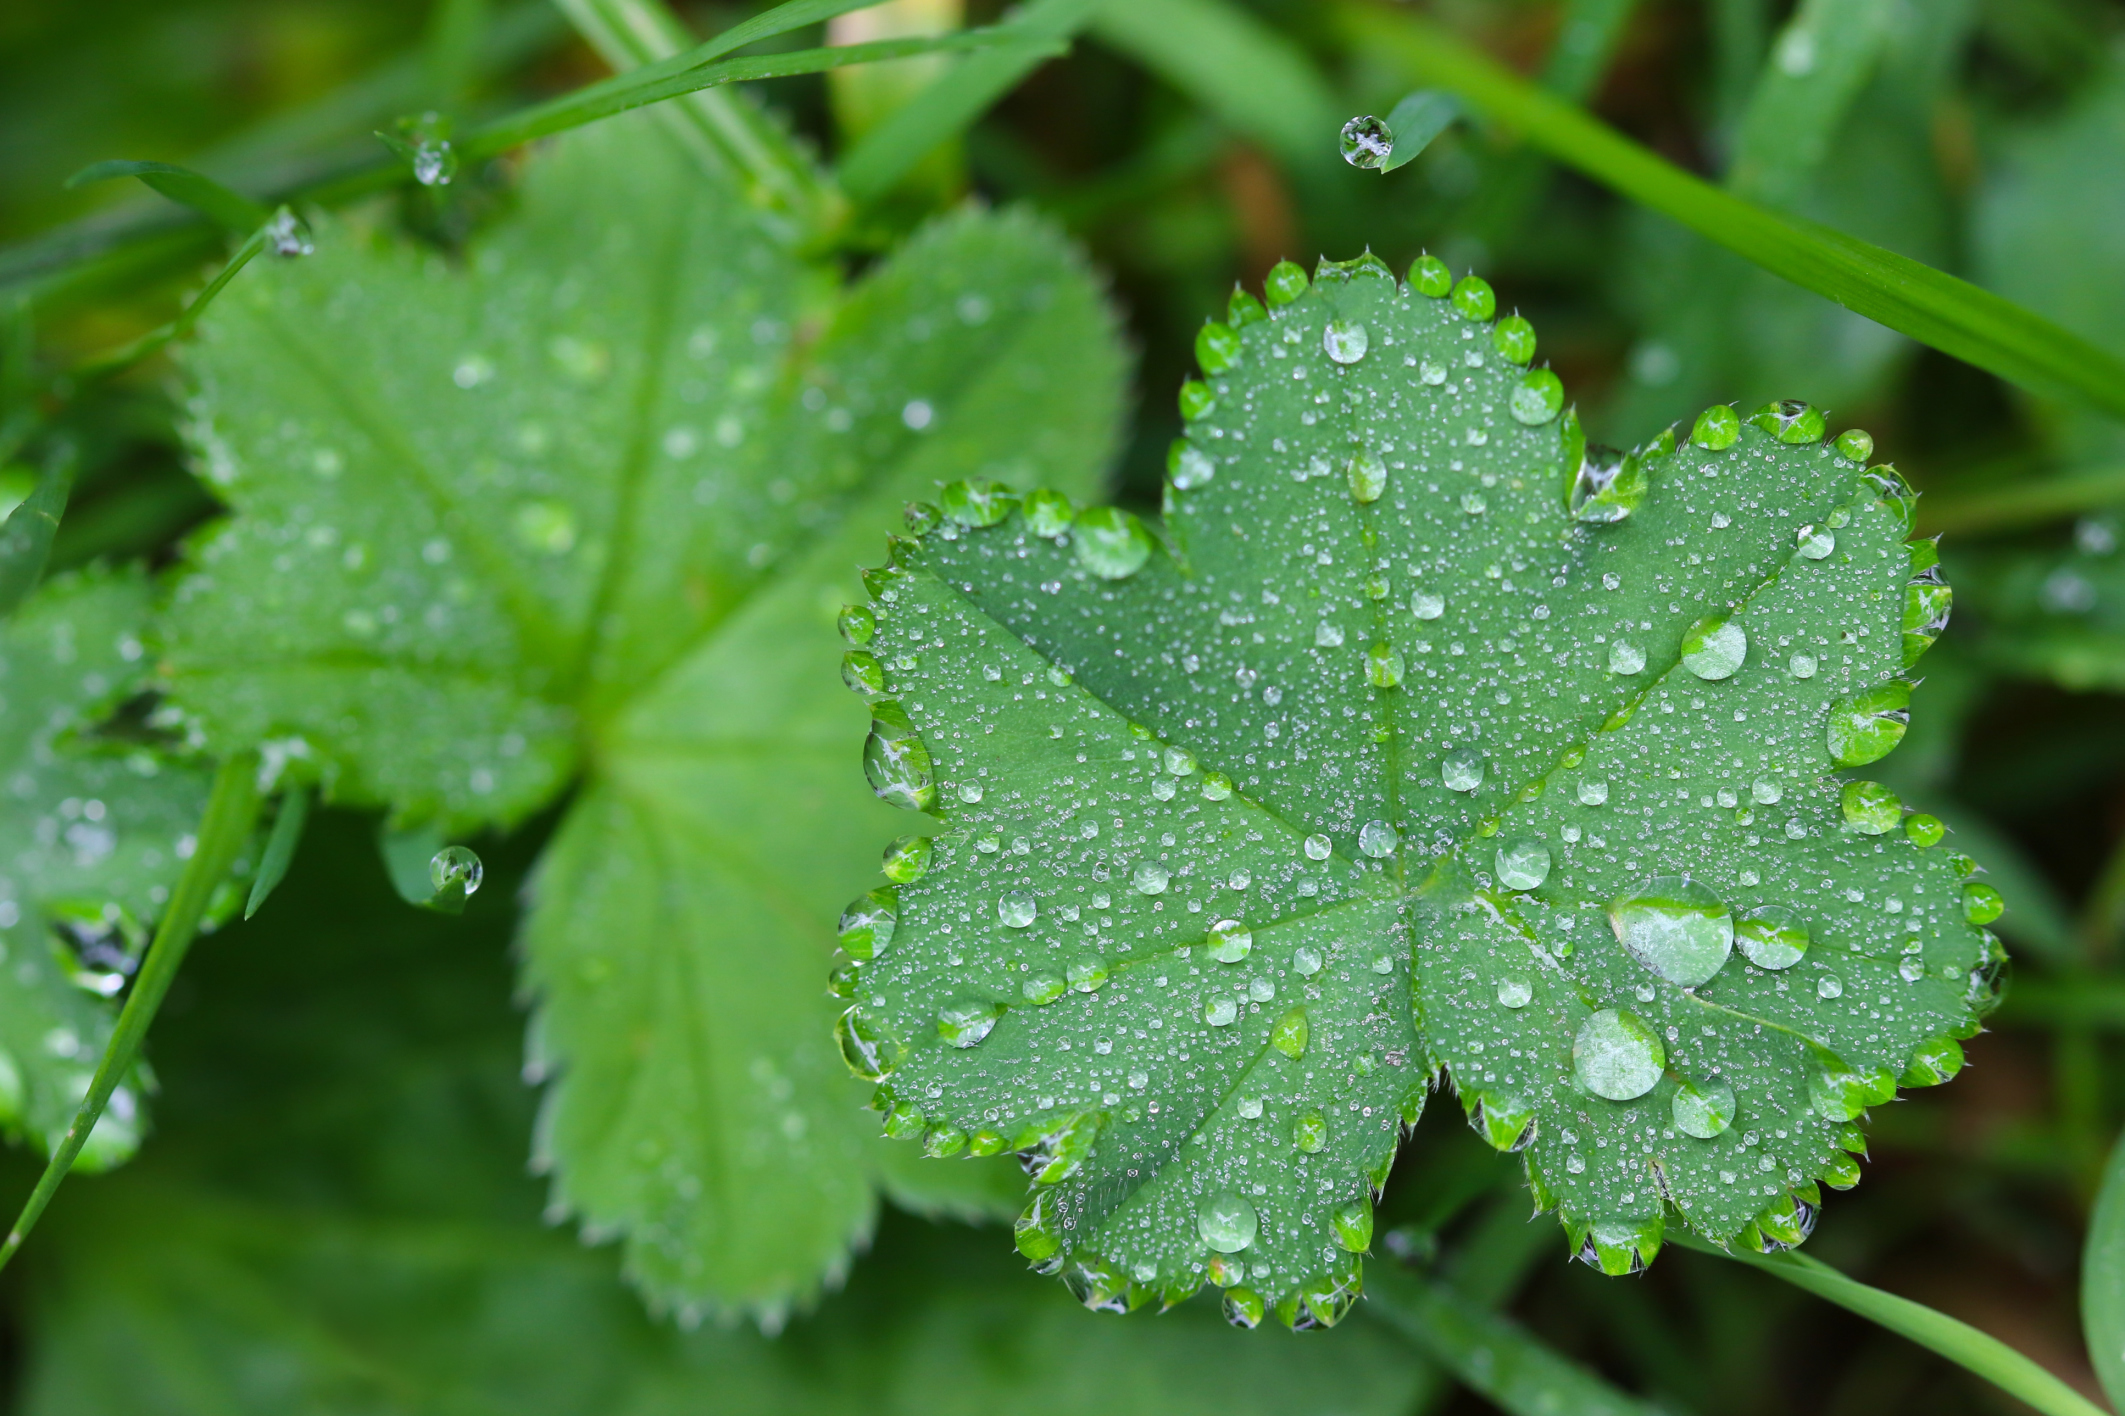 Drops of water on Lady's mantles leaves (Alchemilla)